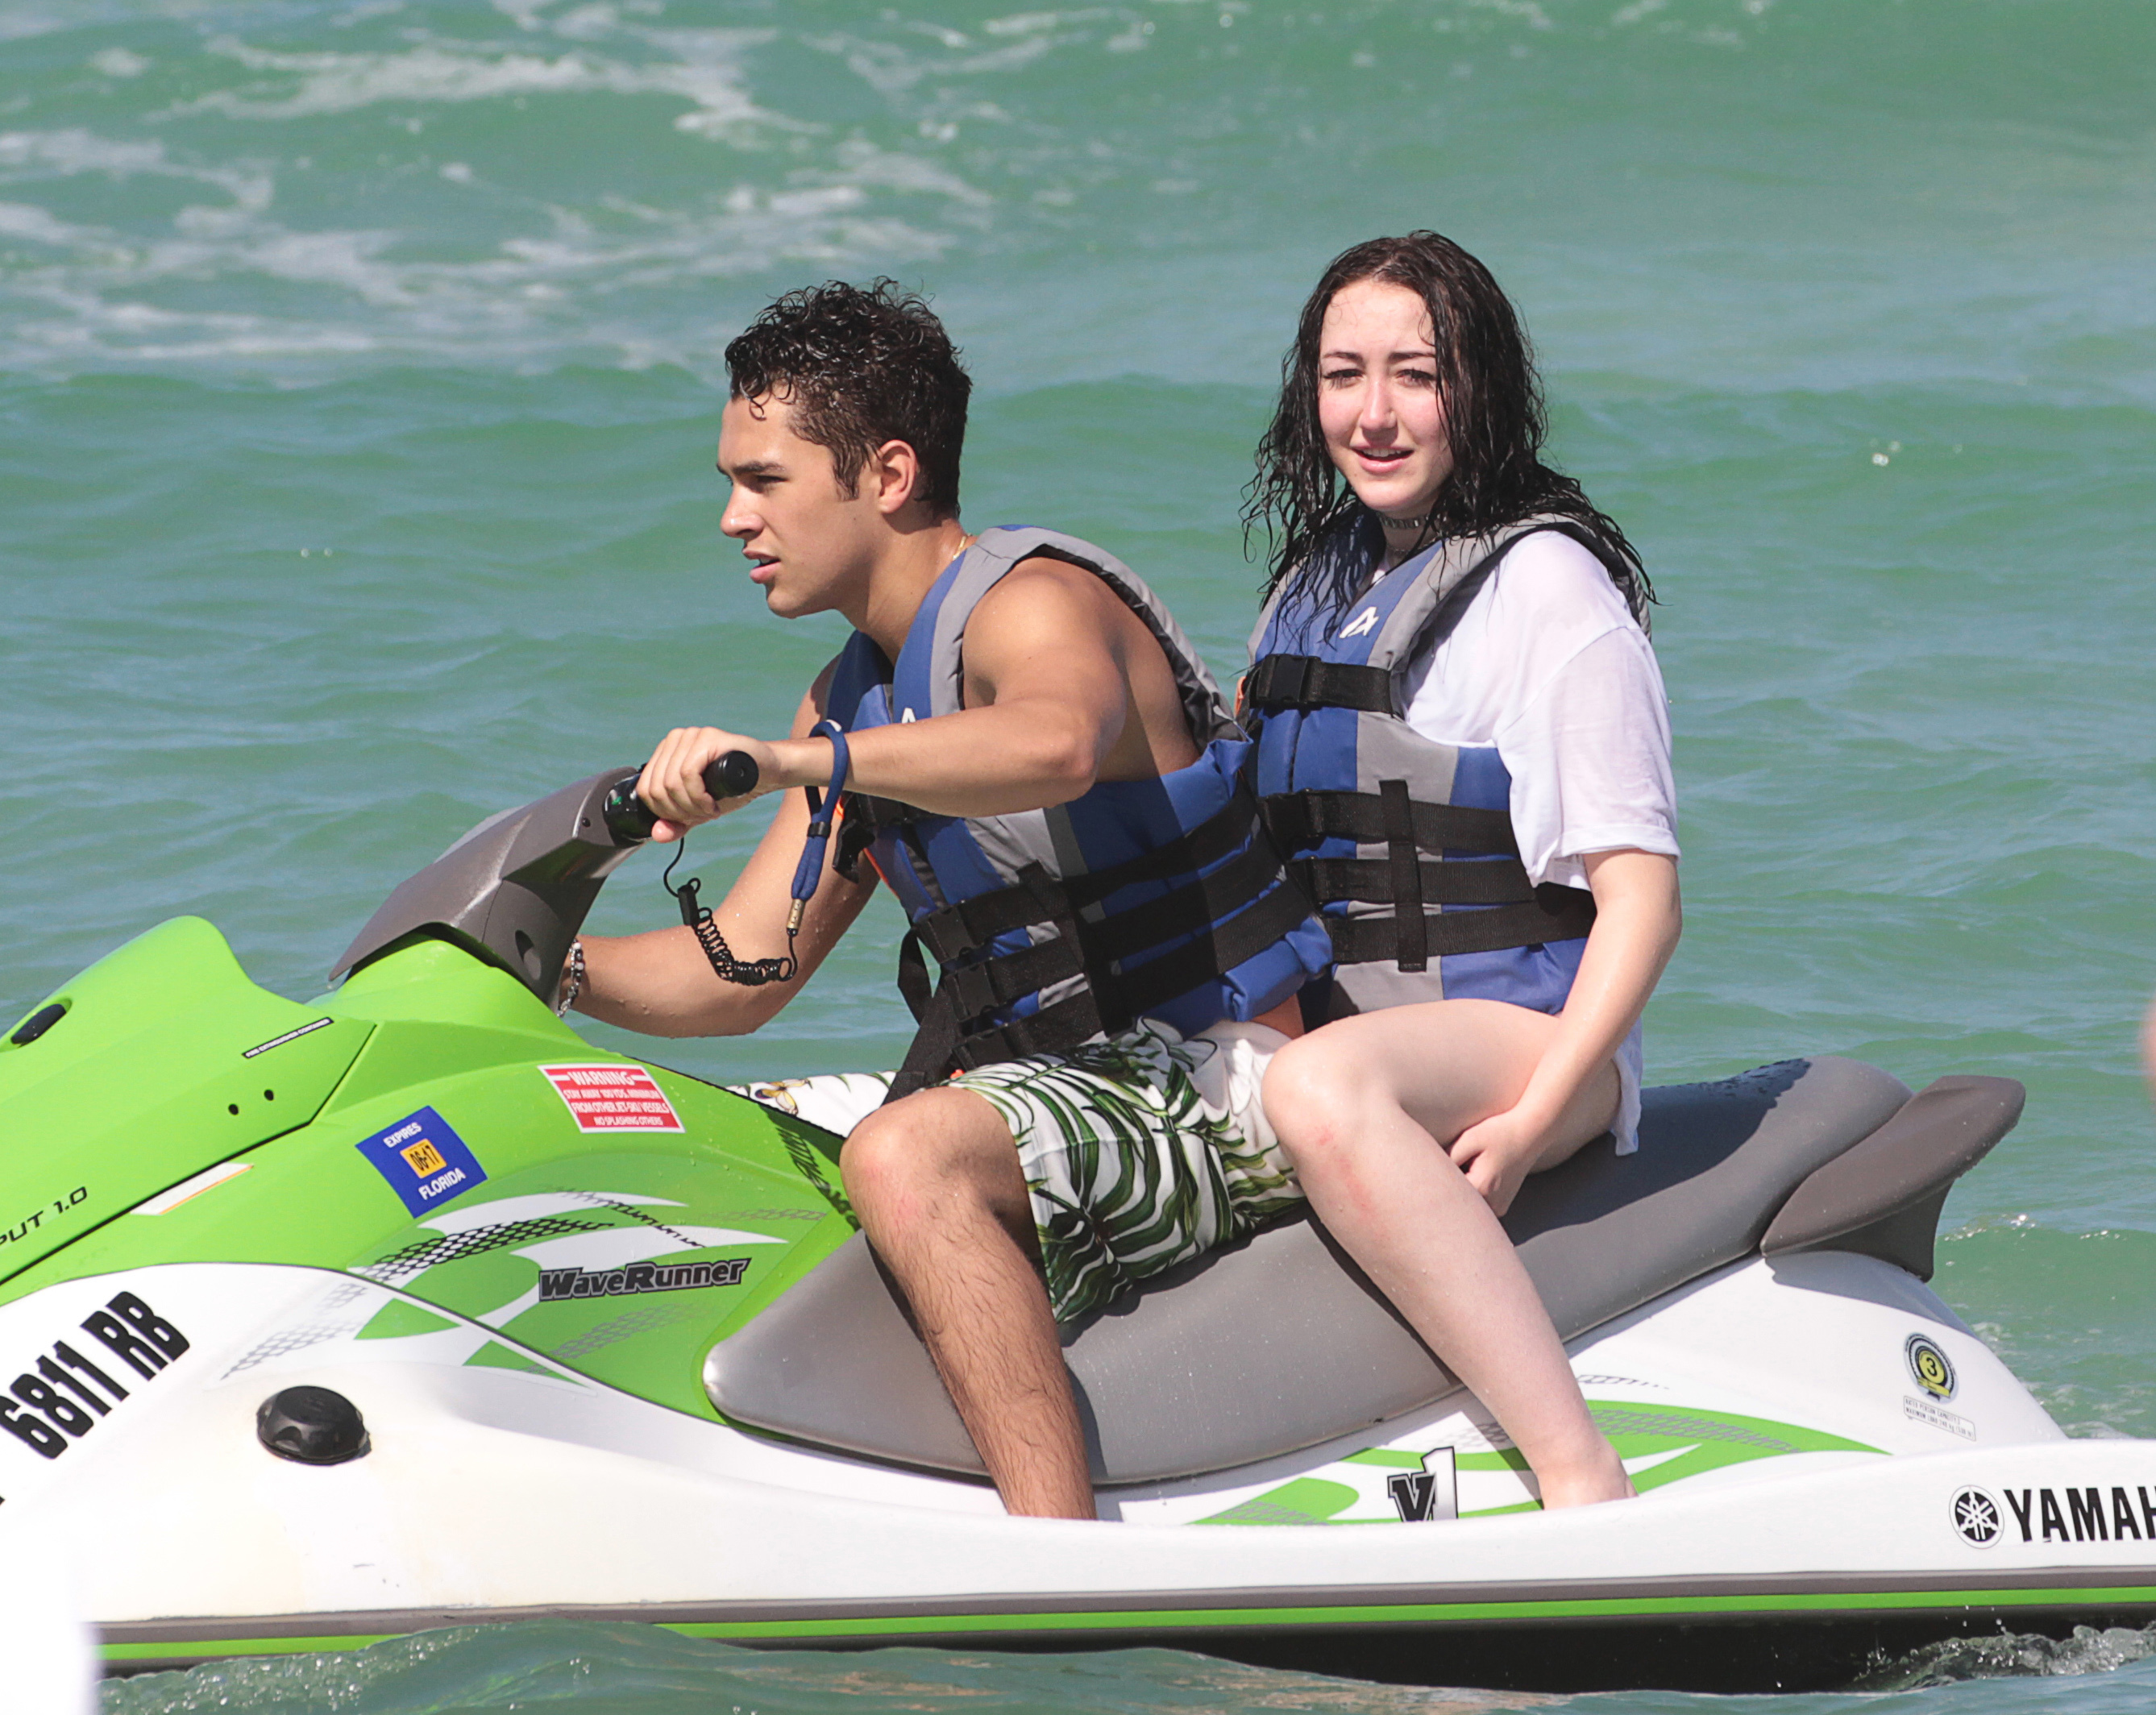 Austin Mahone and Noah Cyrus go jet skiing in Miami on July 16, 2017.